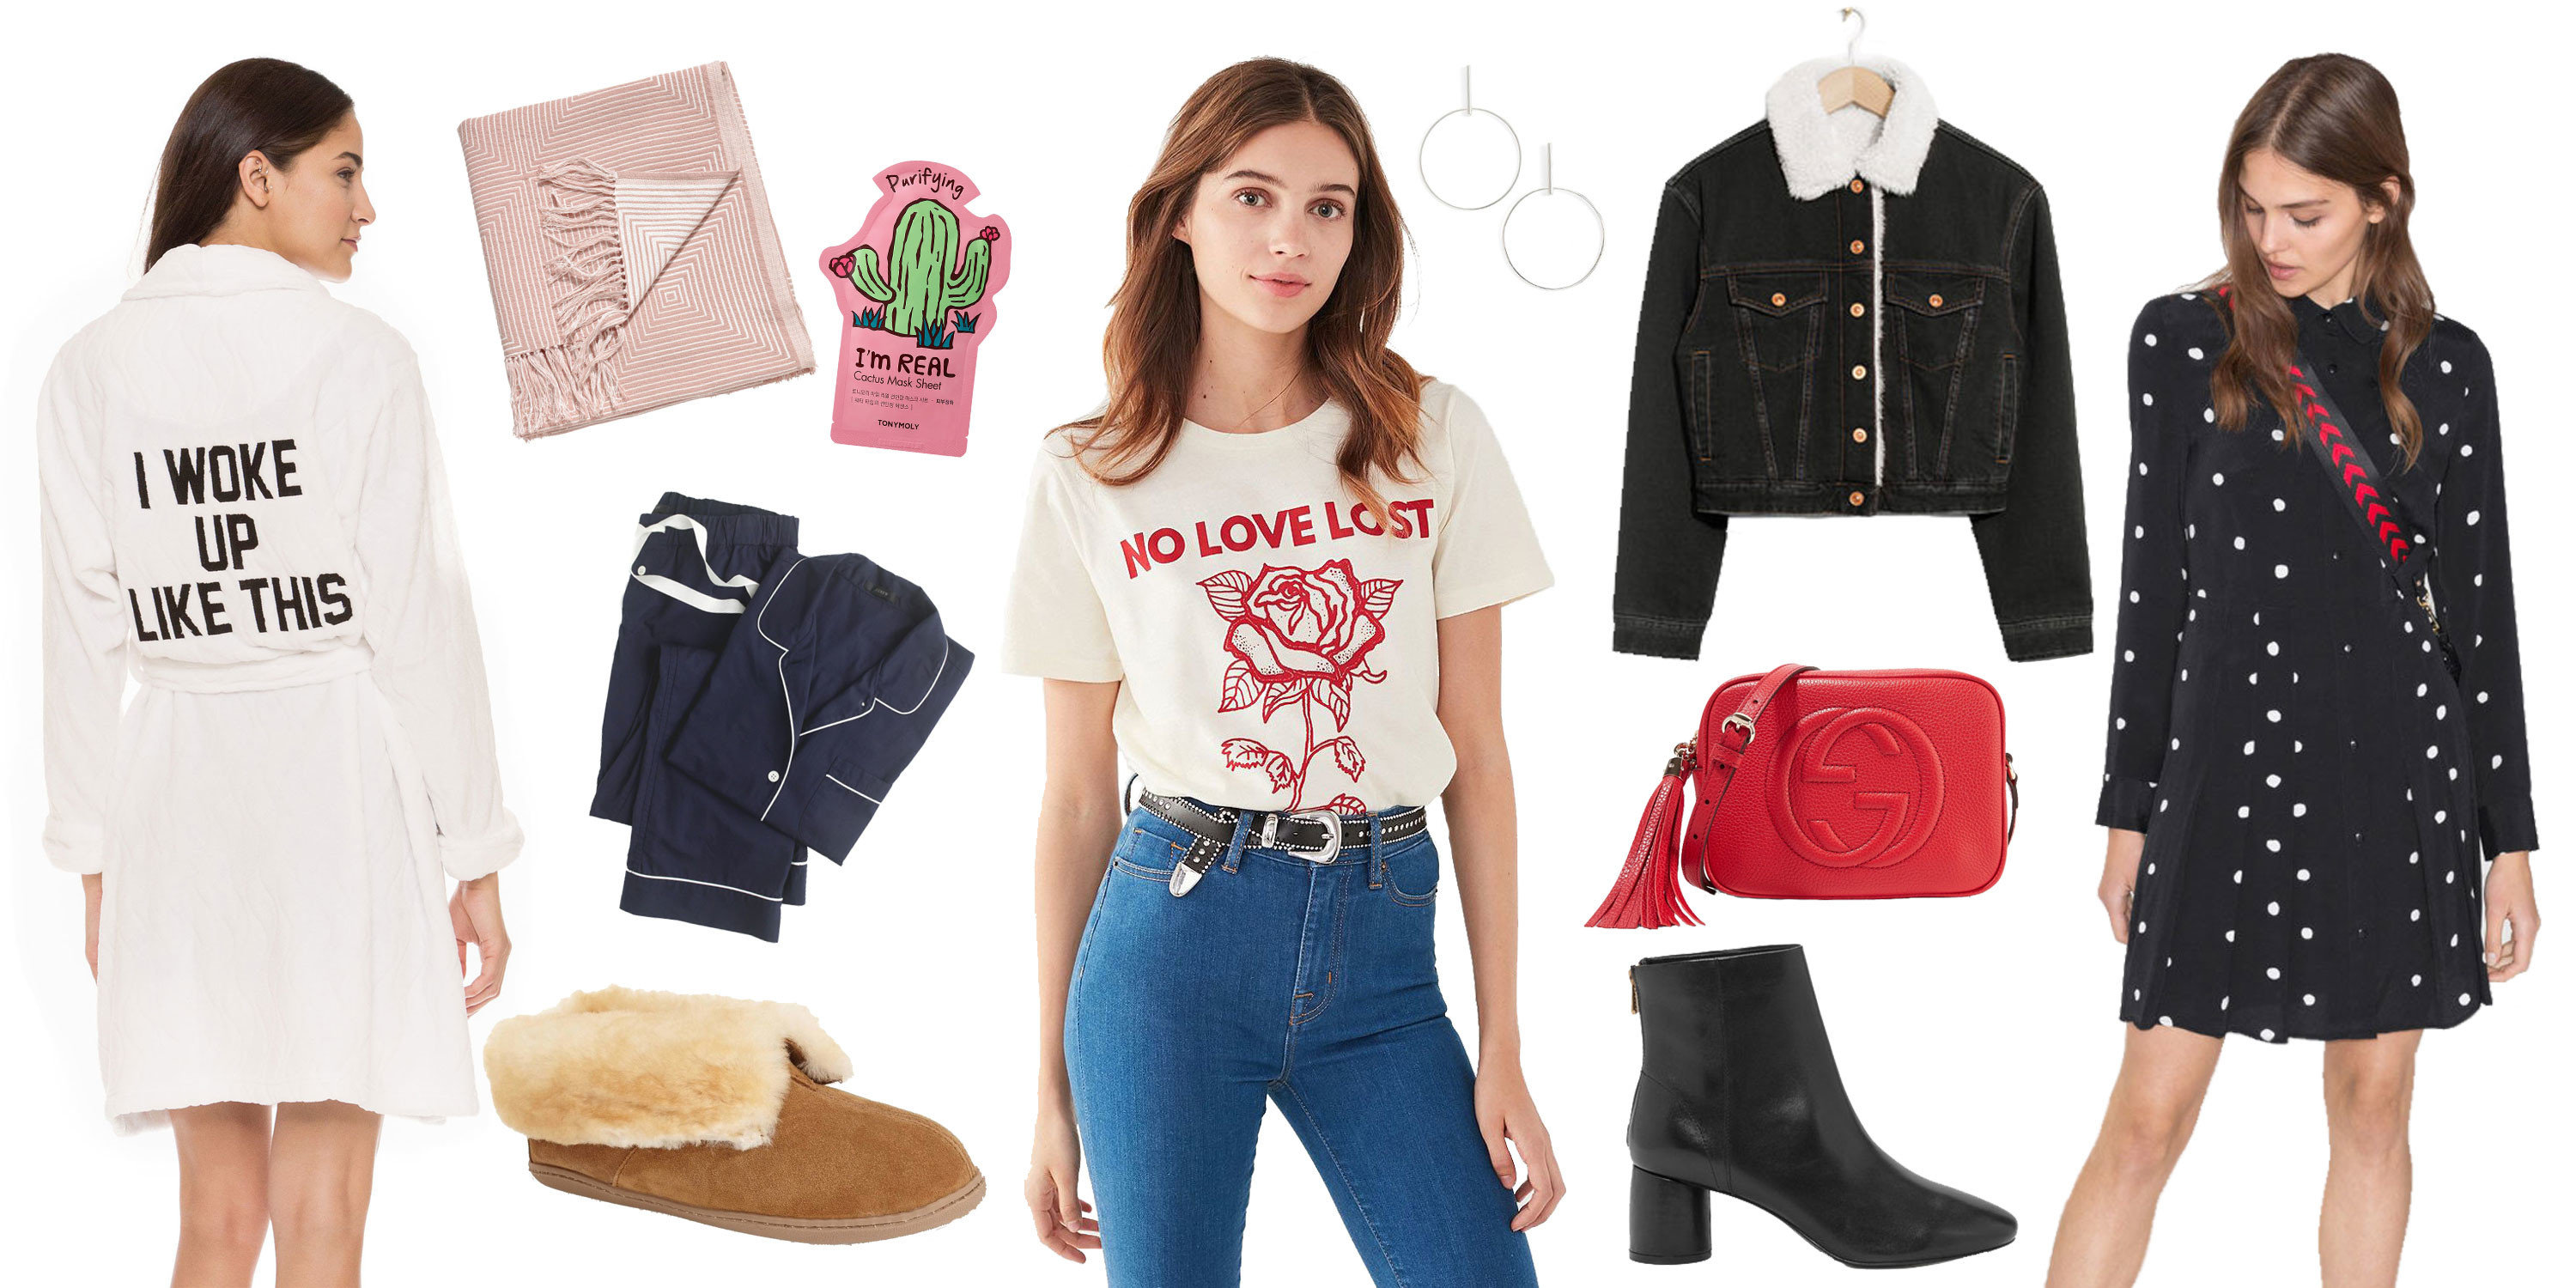 Style + Design Travel Shop person clothing fashion people shoulder outerwear t shirt product shoe sleeve pajamas textile jeans jacket posing pattern girl